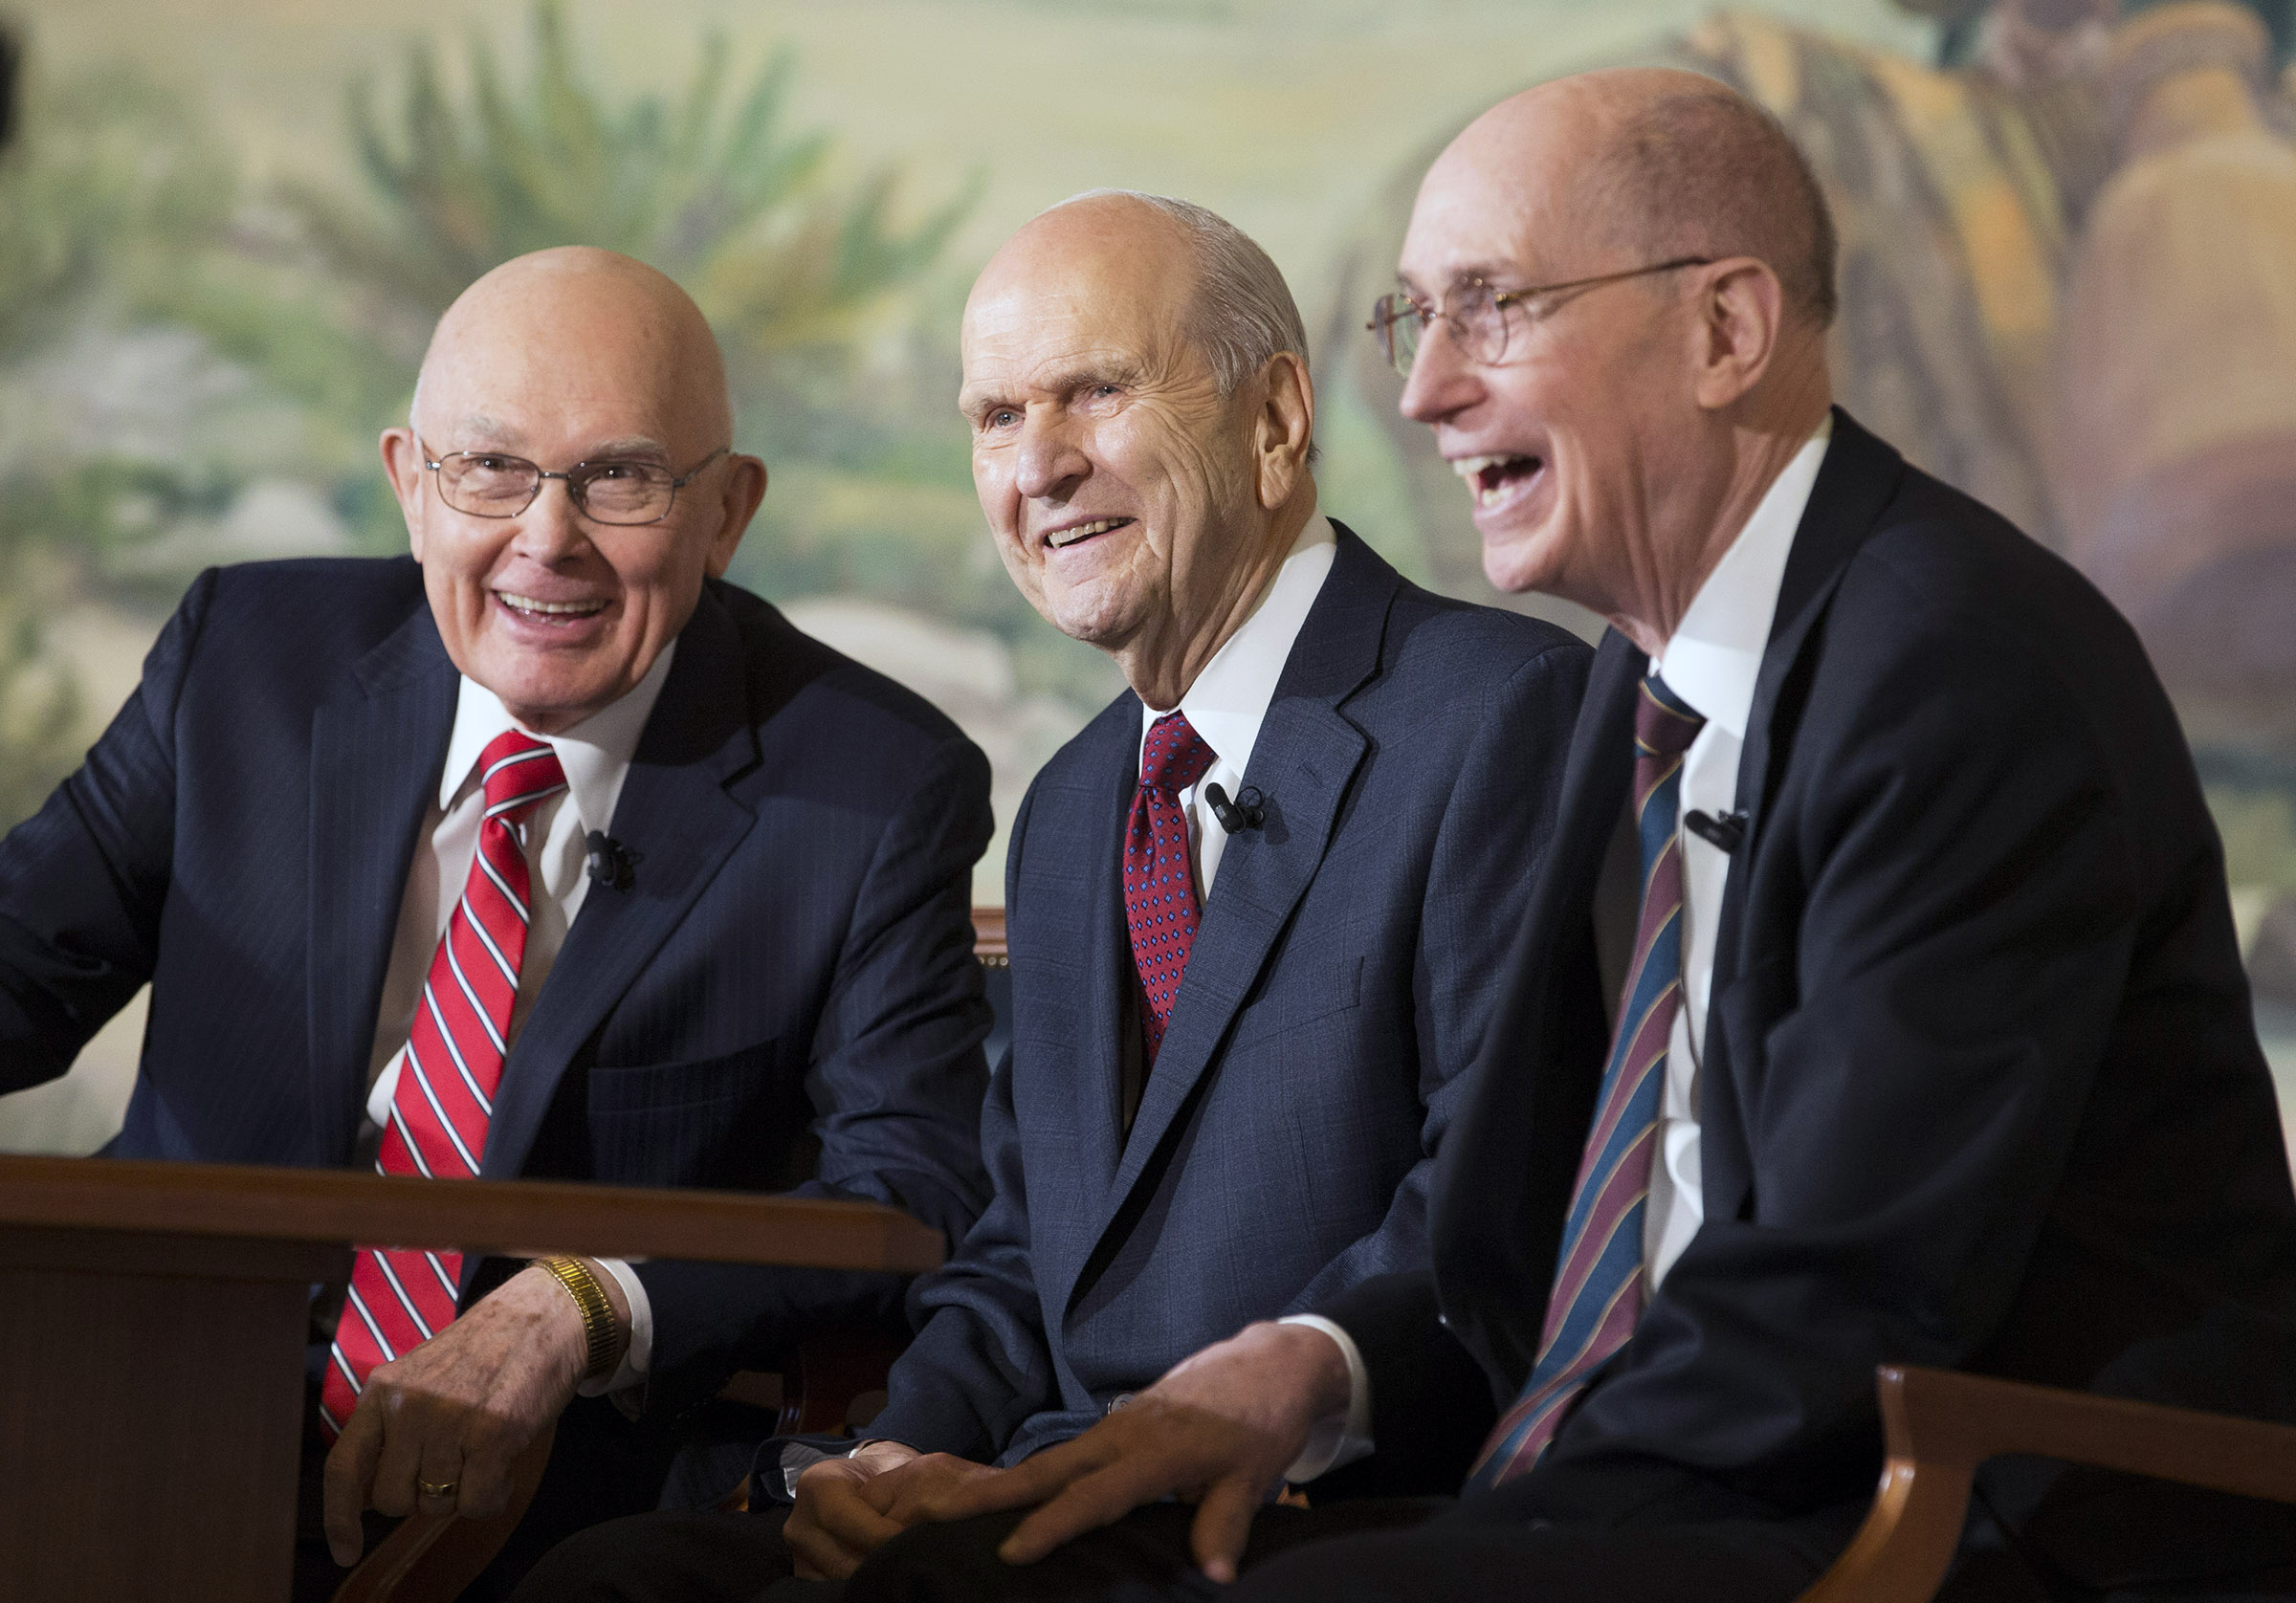 President Russell M. Nelson the 17th President of The Church of Jesus Christ of Latter-day Saints sits with his counselors President Dallin H. Oaks, first counselor, (left) and President Henry B. Eyring, second counselor (right) at a press conference in Salt Lake City Utah on Tuesday, Jan. 16, 2018.